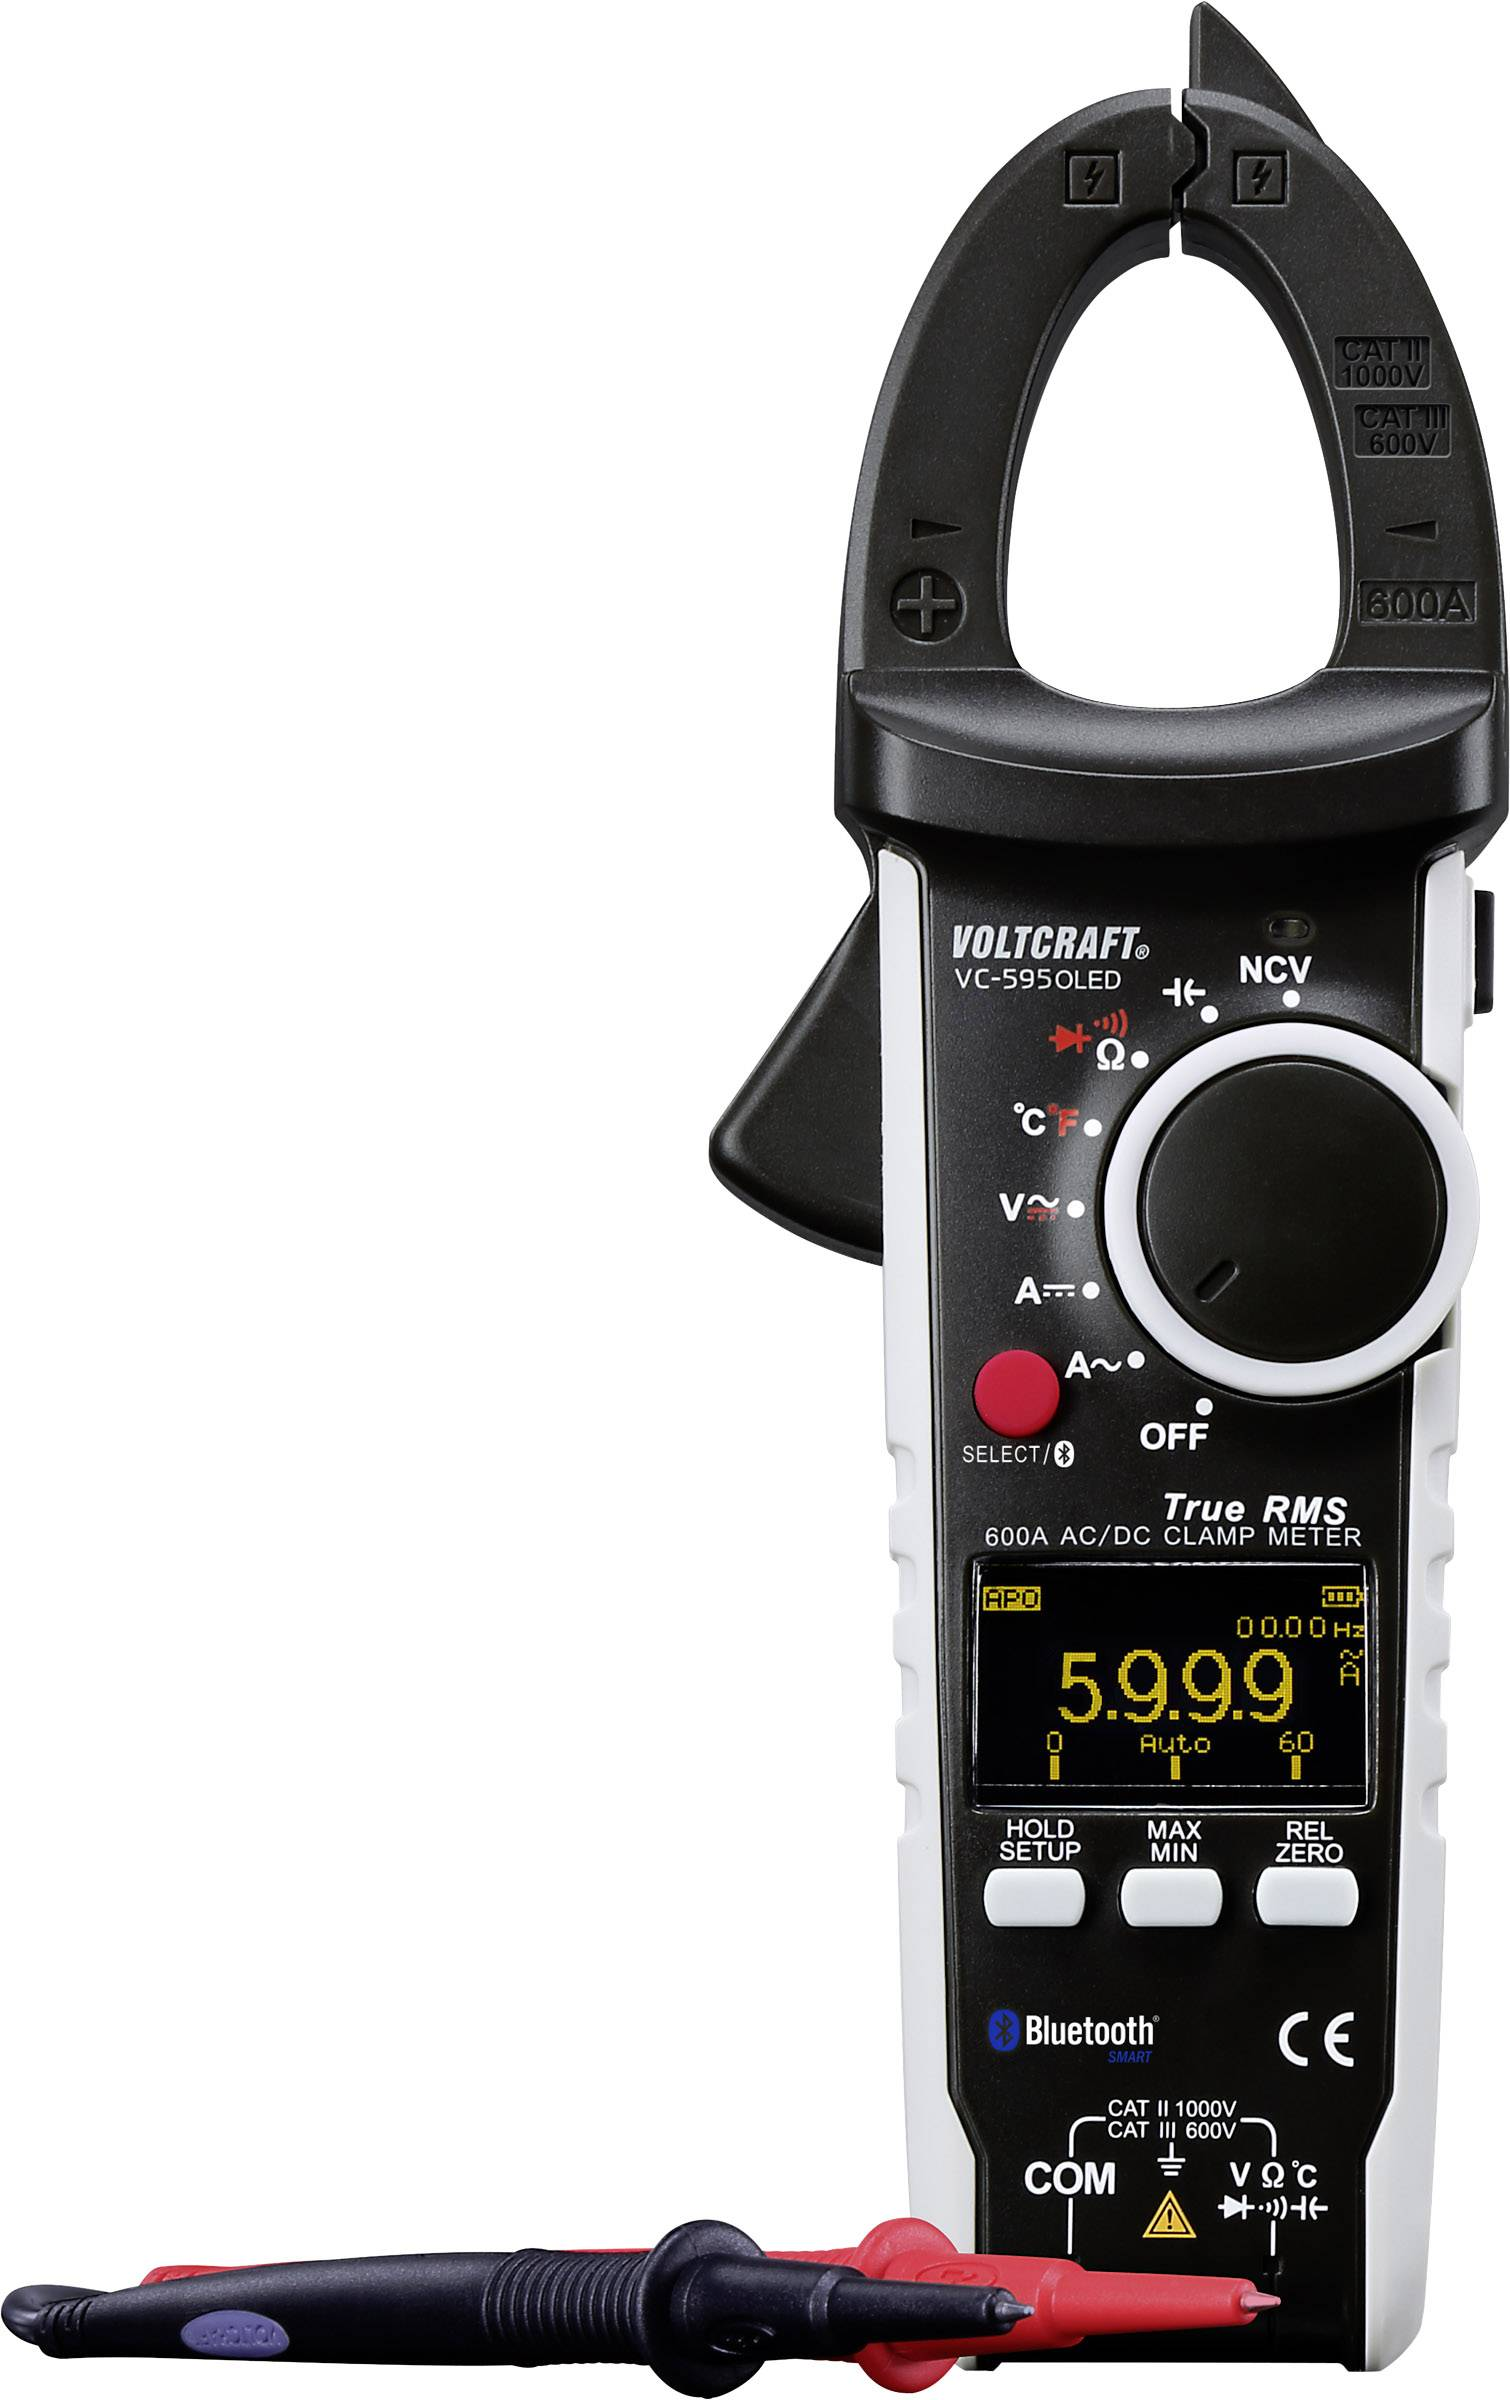 Handheld AC Current Clamp Probe with Multimeter 600A for AC Current Measurements